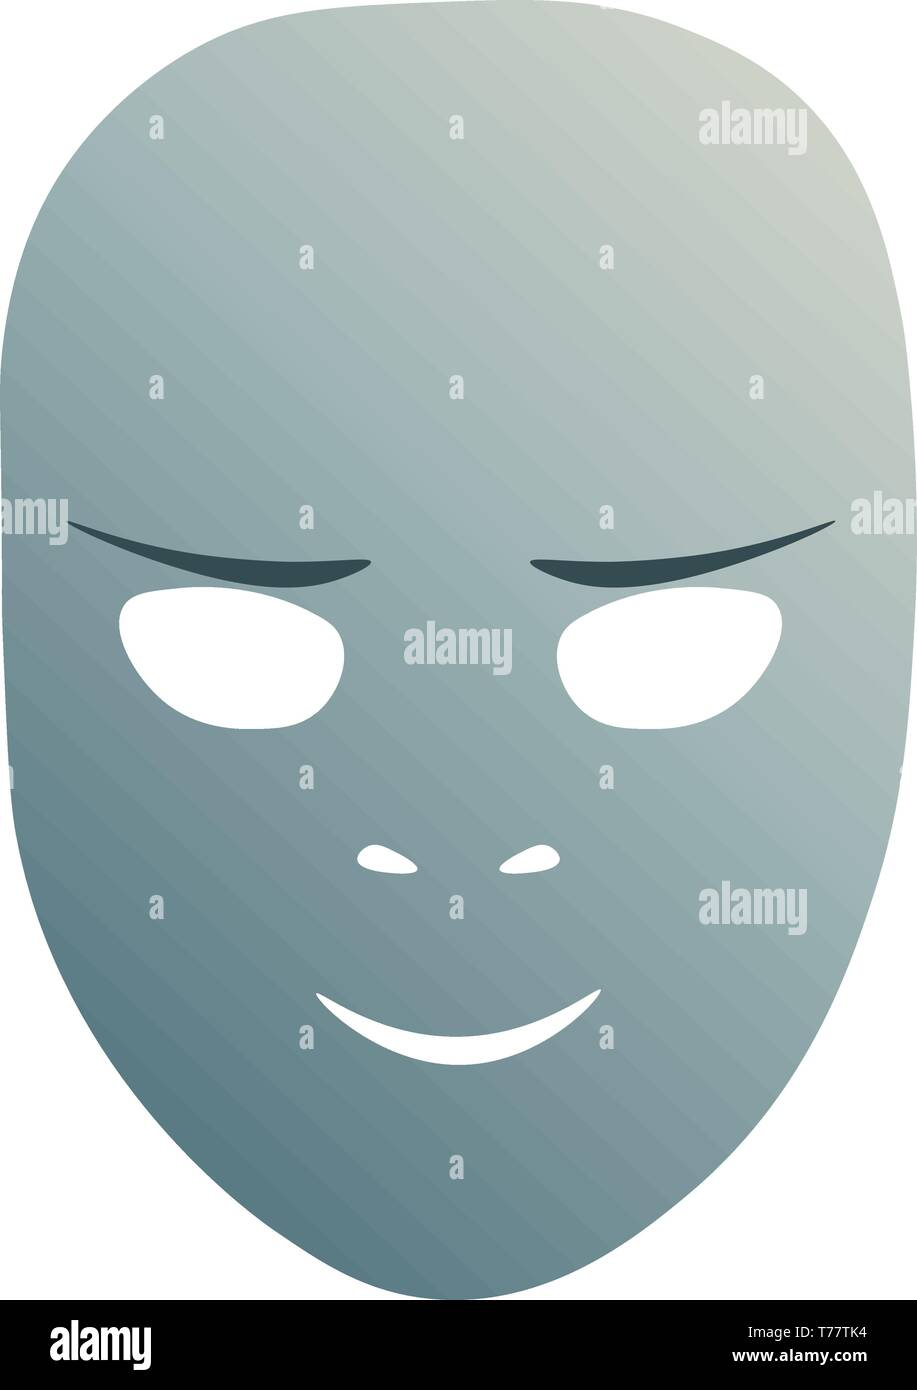 Theatrical mask with cunning emotion. Vector illustration. Blue mask with gradient isolated on white background. - Stock Image